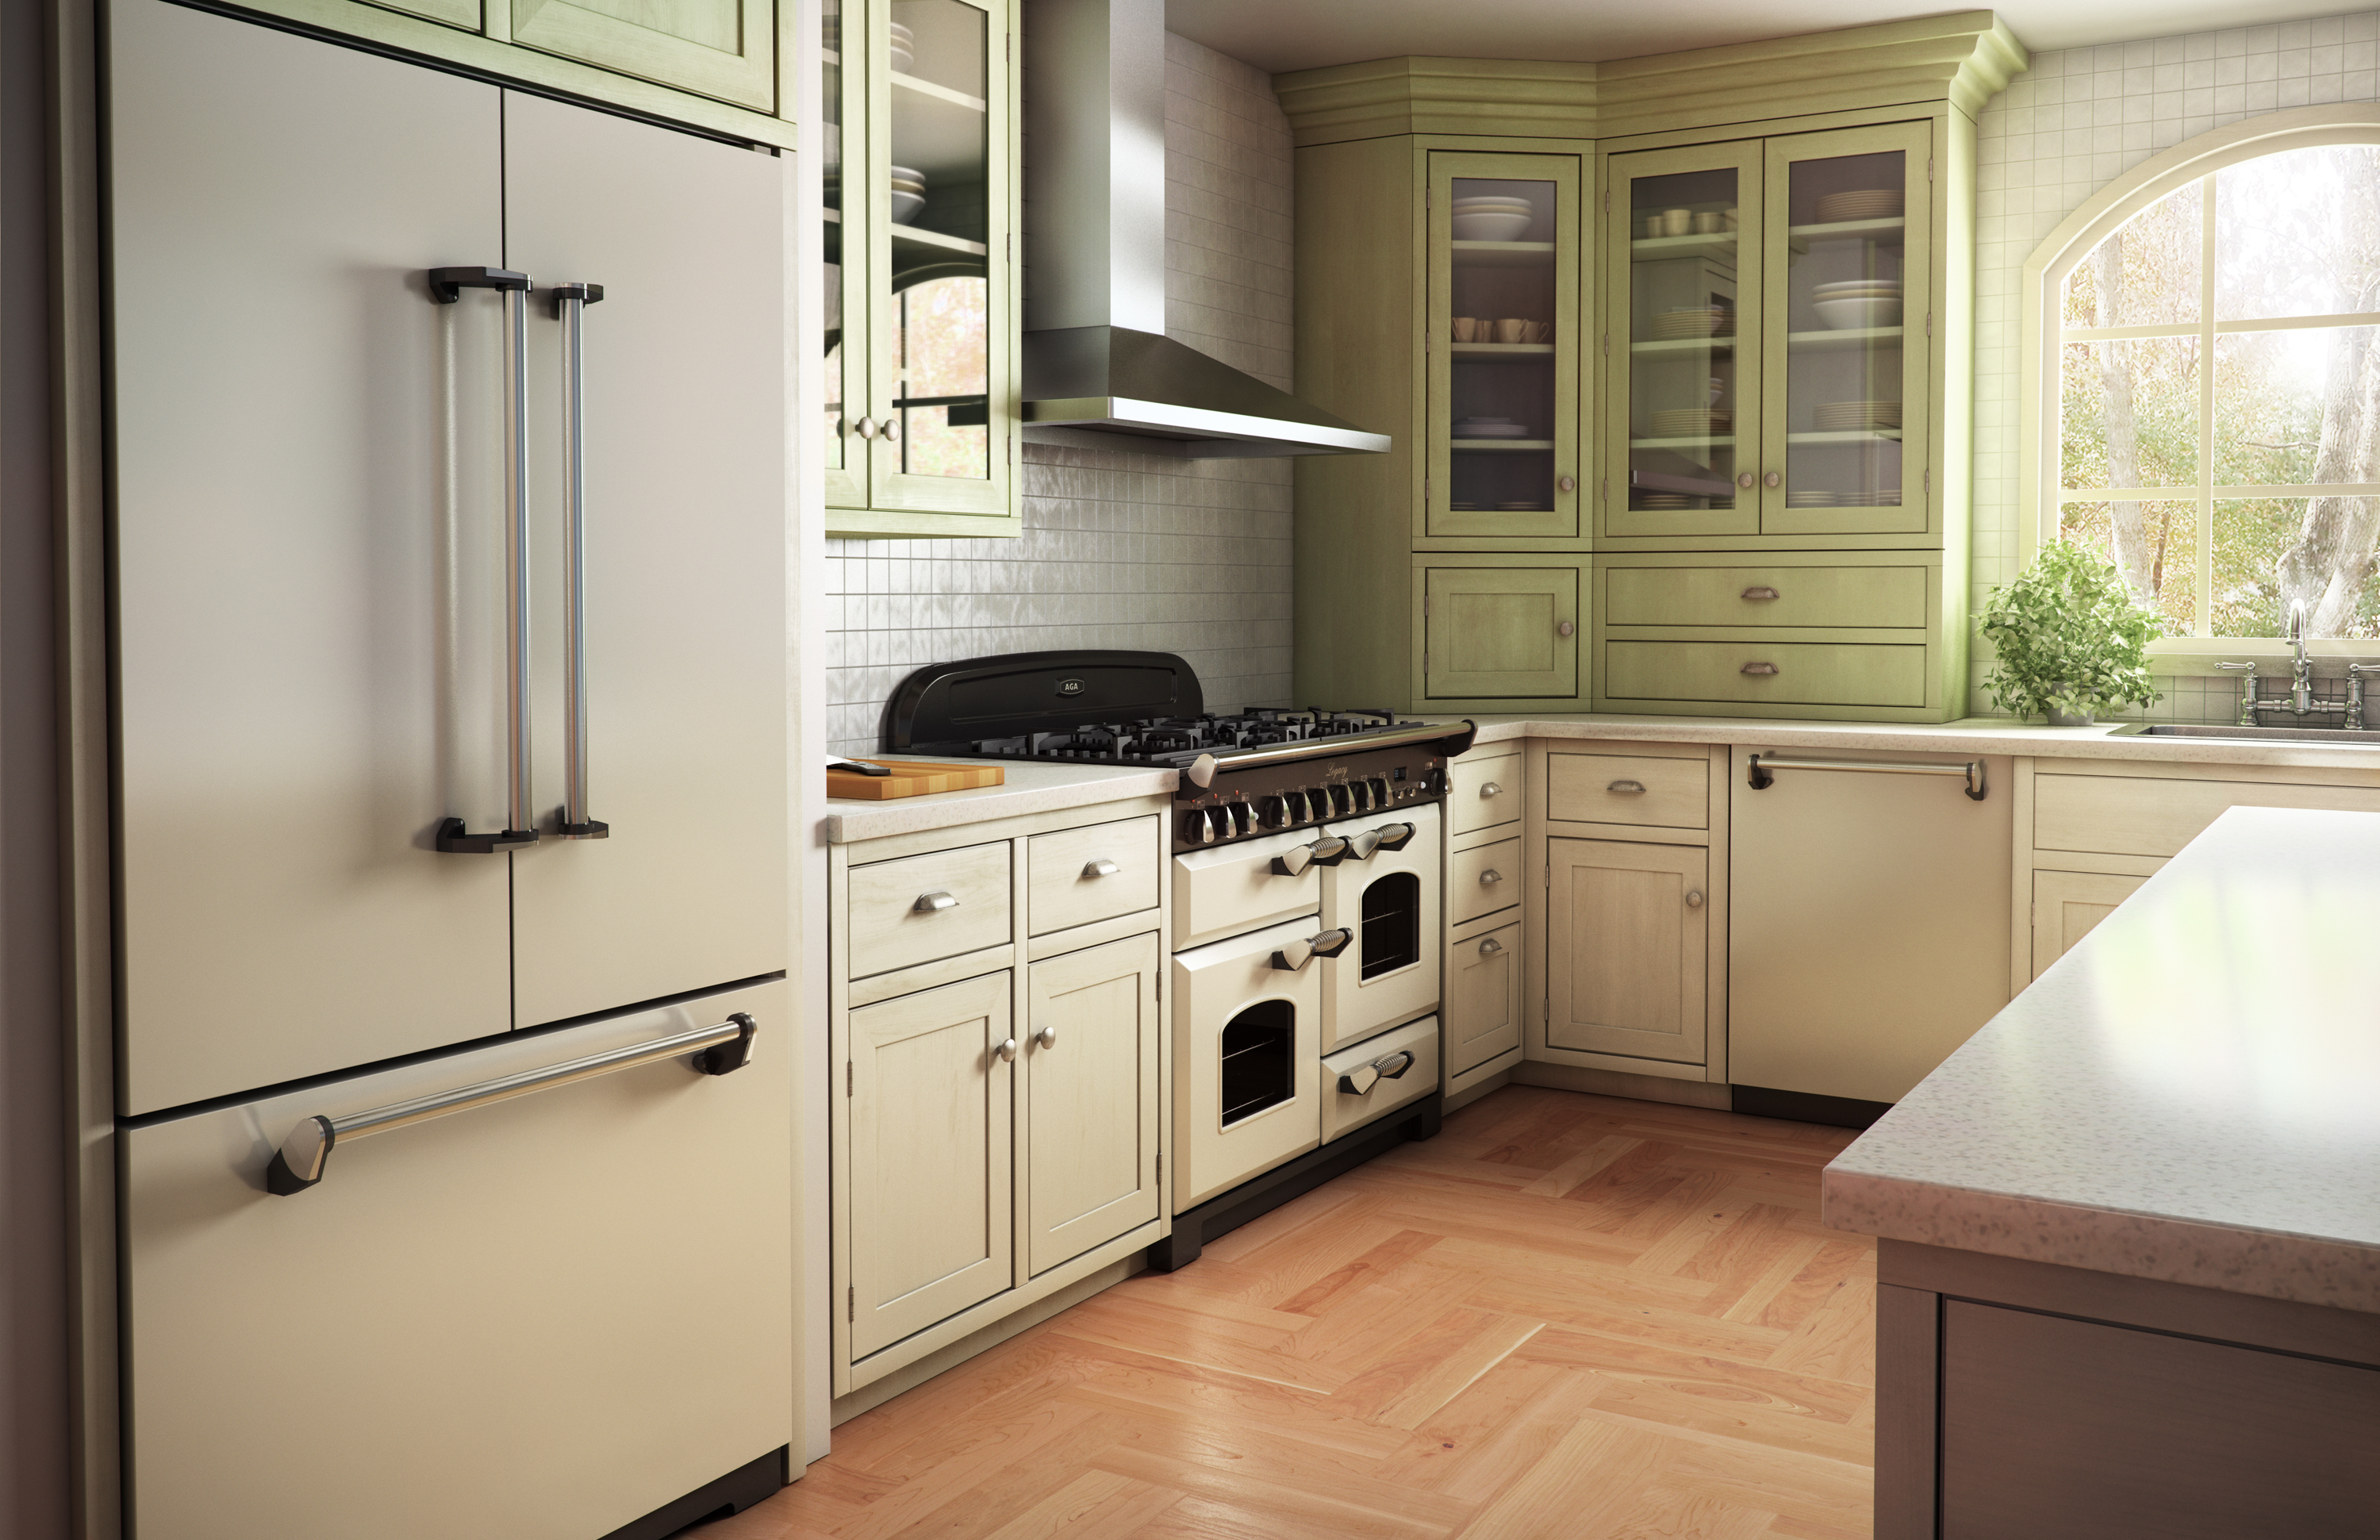 Bisque Appliances Kitchen Design